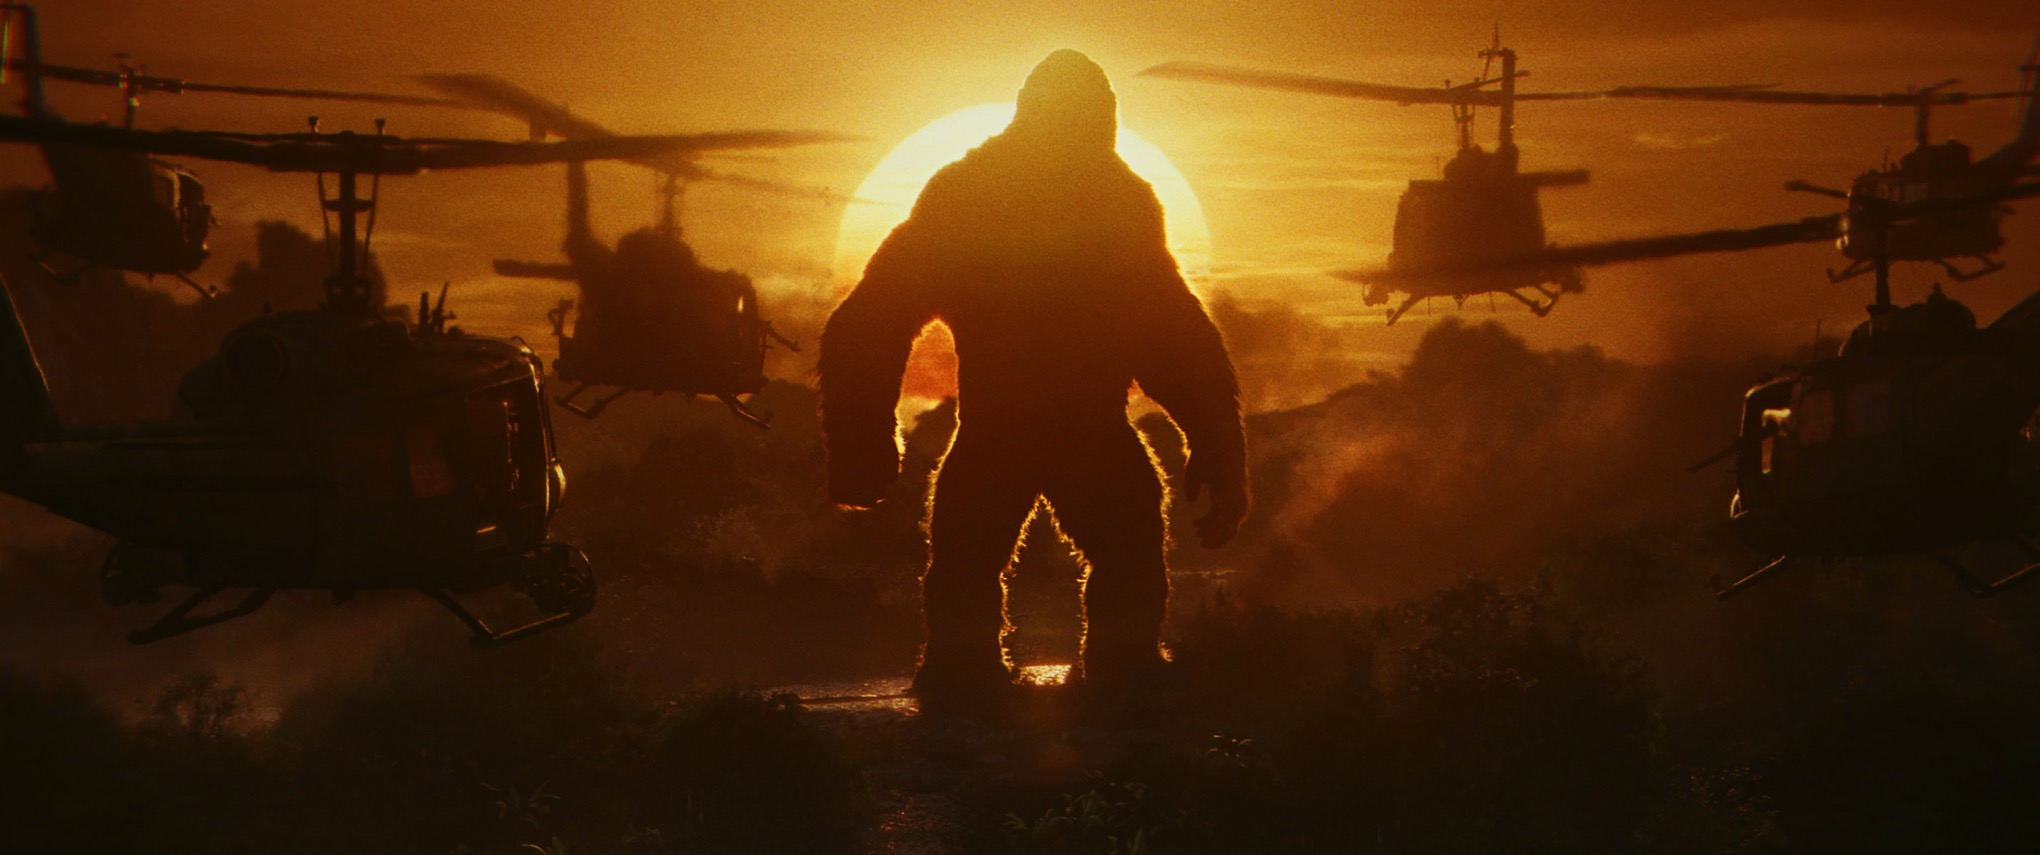 Image Warner Bros. Pictures & How Industrial Light u0026 Magic built a better Kong for Skull Island ... azcodes.com